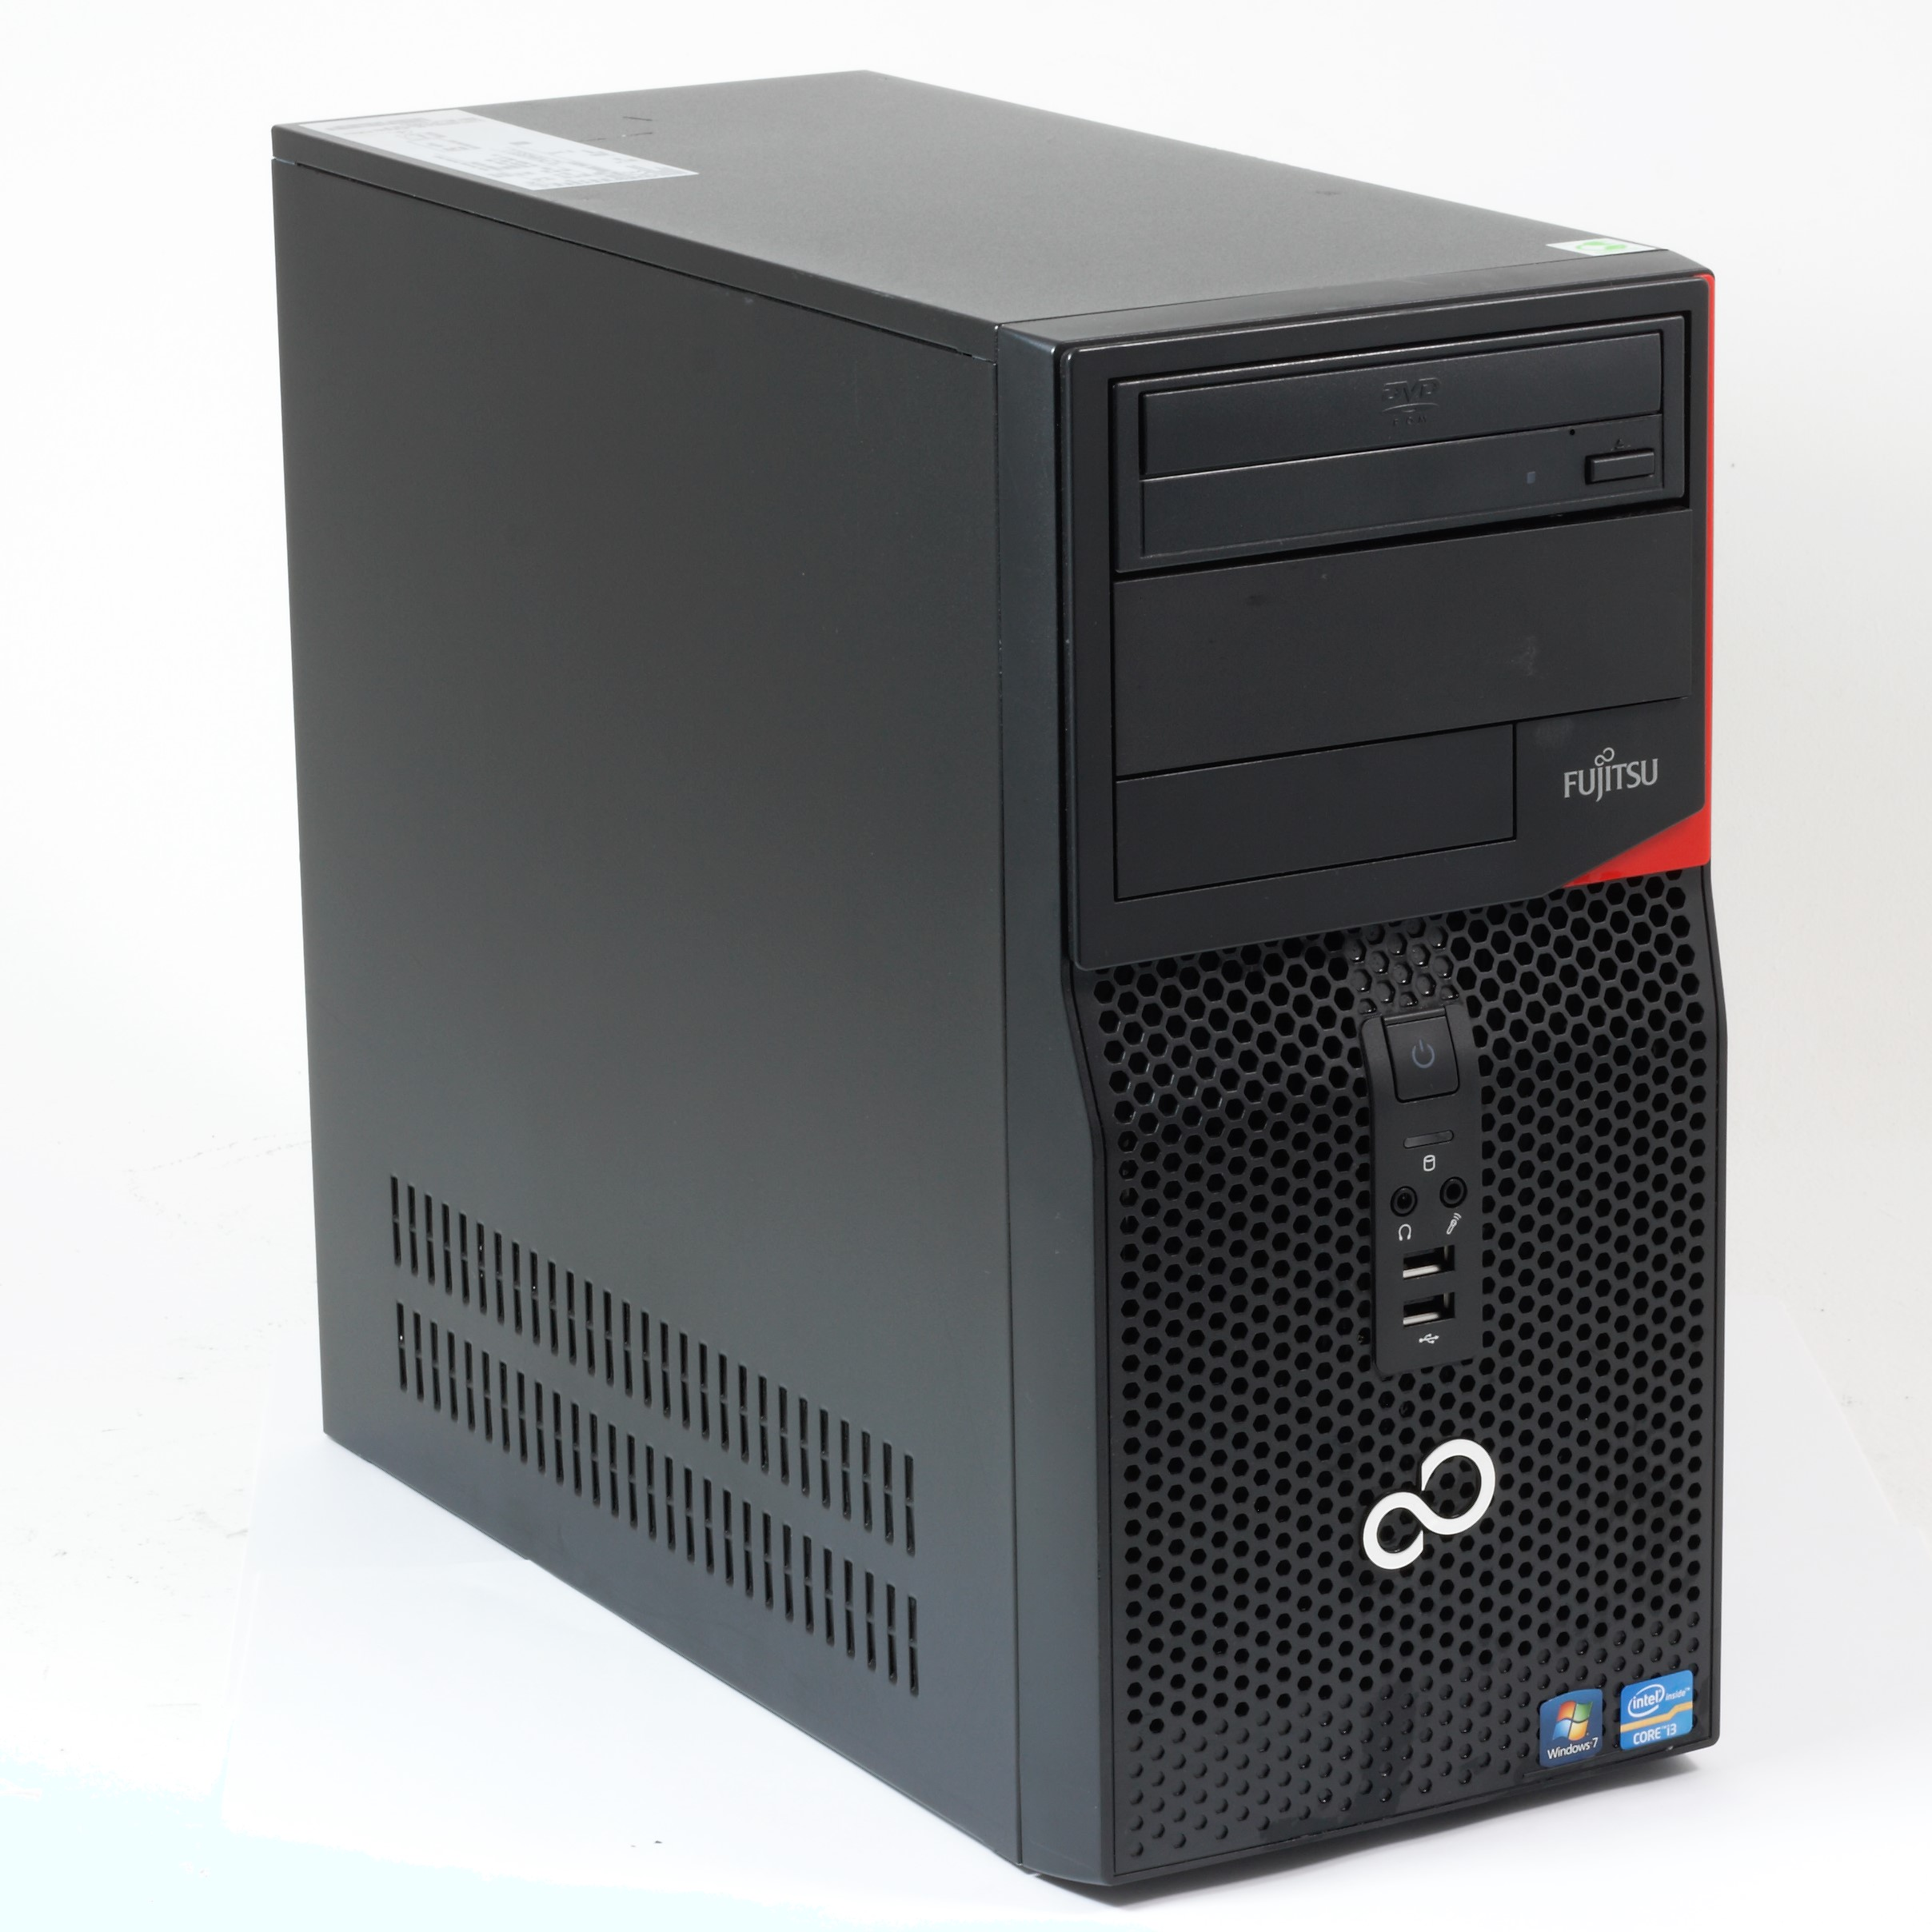 Fujitsu Esprimo P420 Minitower PC Core i3 4130 3,4GHz 120GB SSD 4GB RAM DVD-ROM